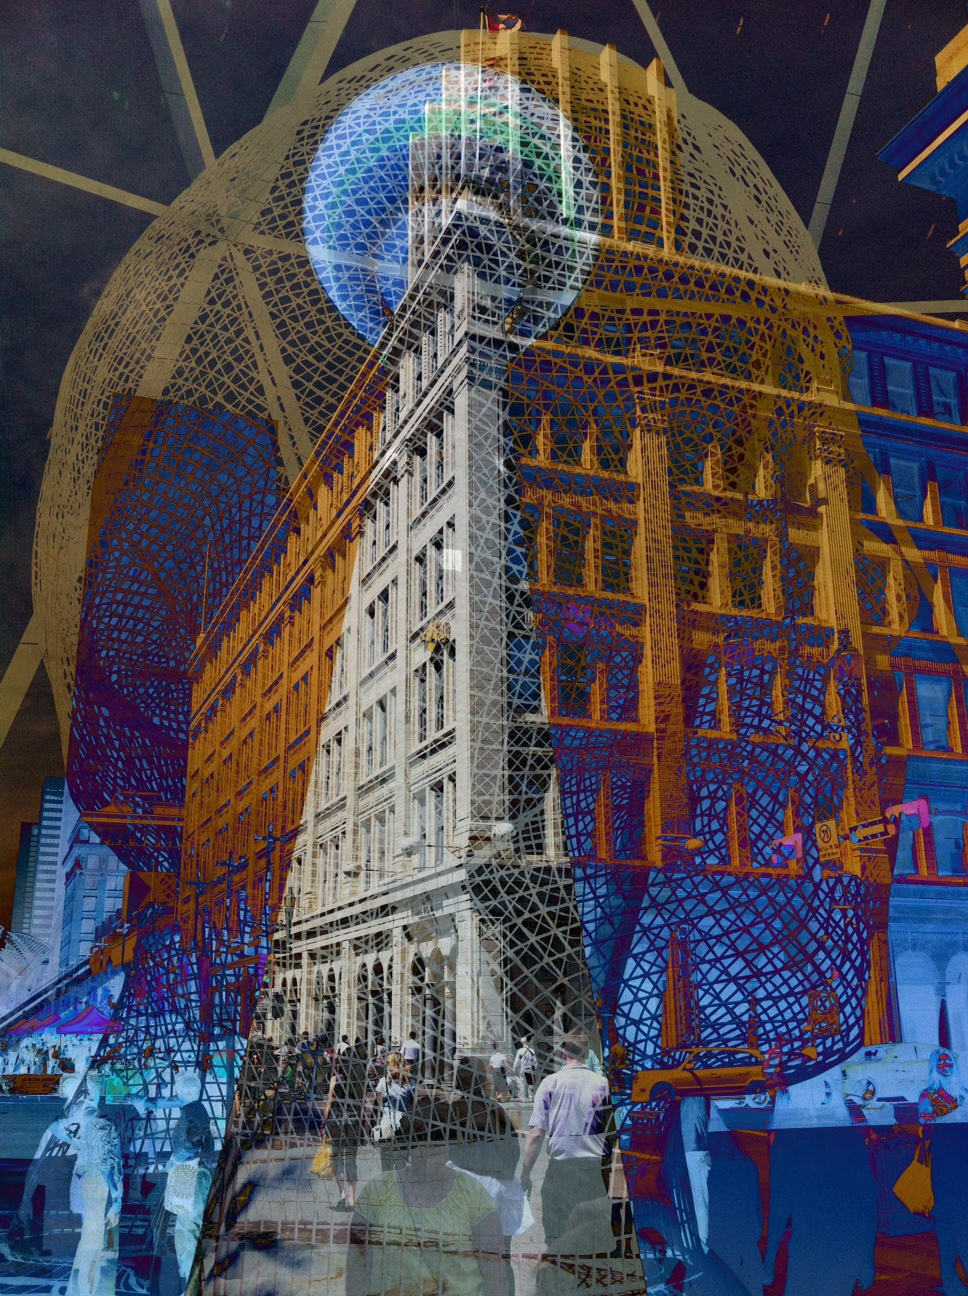 Calgary Tower,Stephen Avenue, the historic Hudson Bay department store and Wonderland all mesh together in this image.